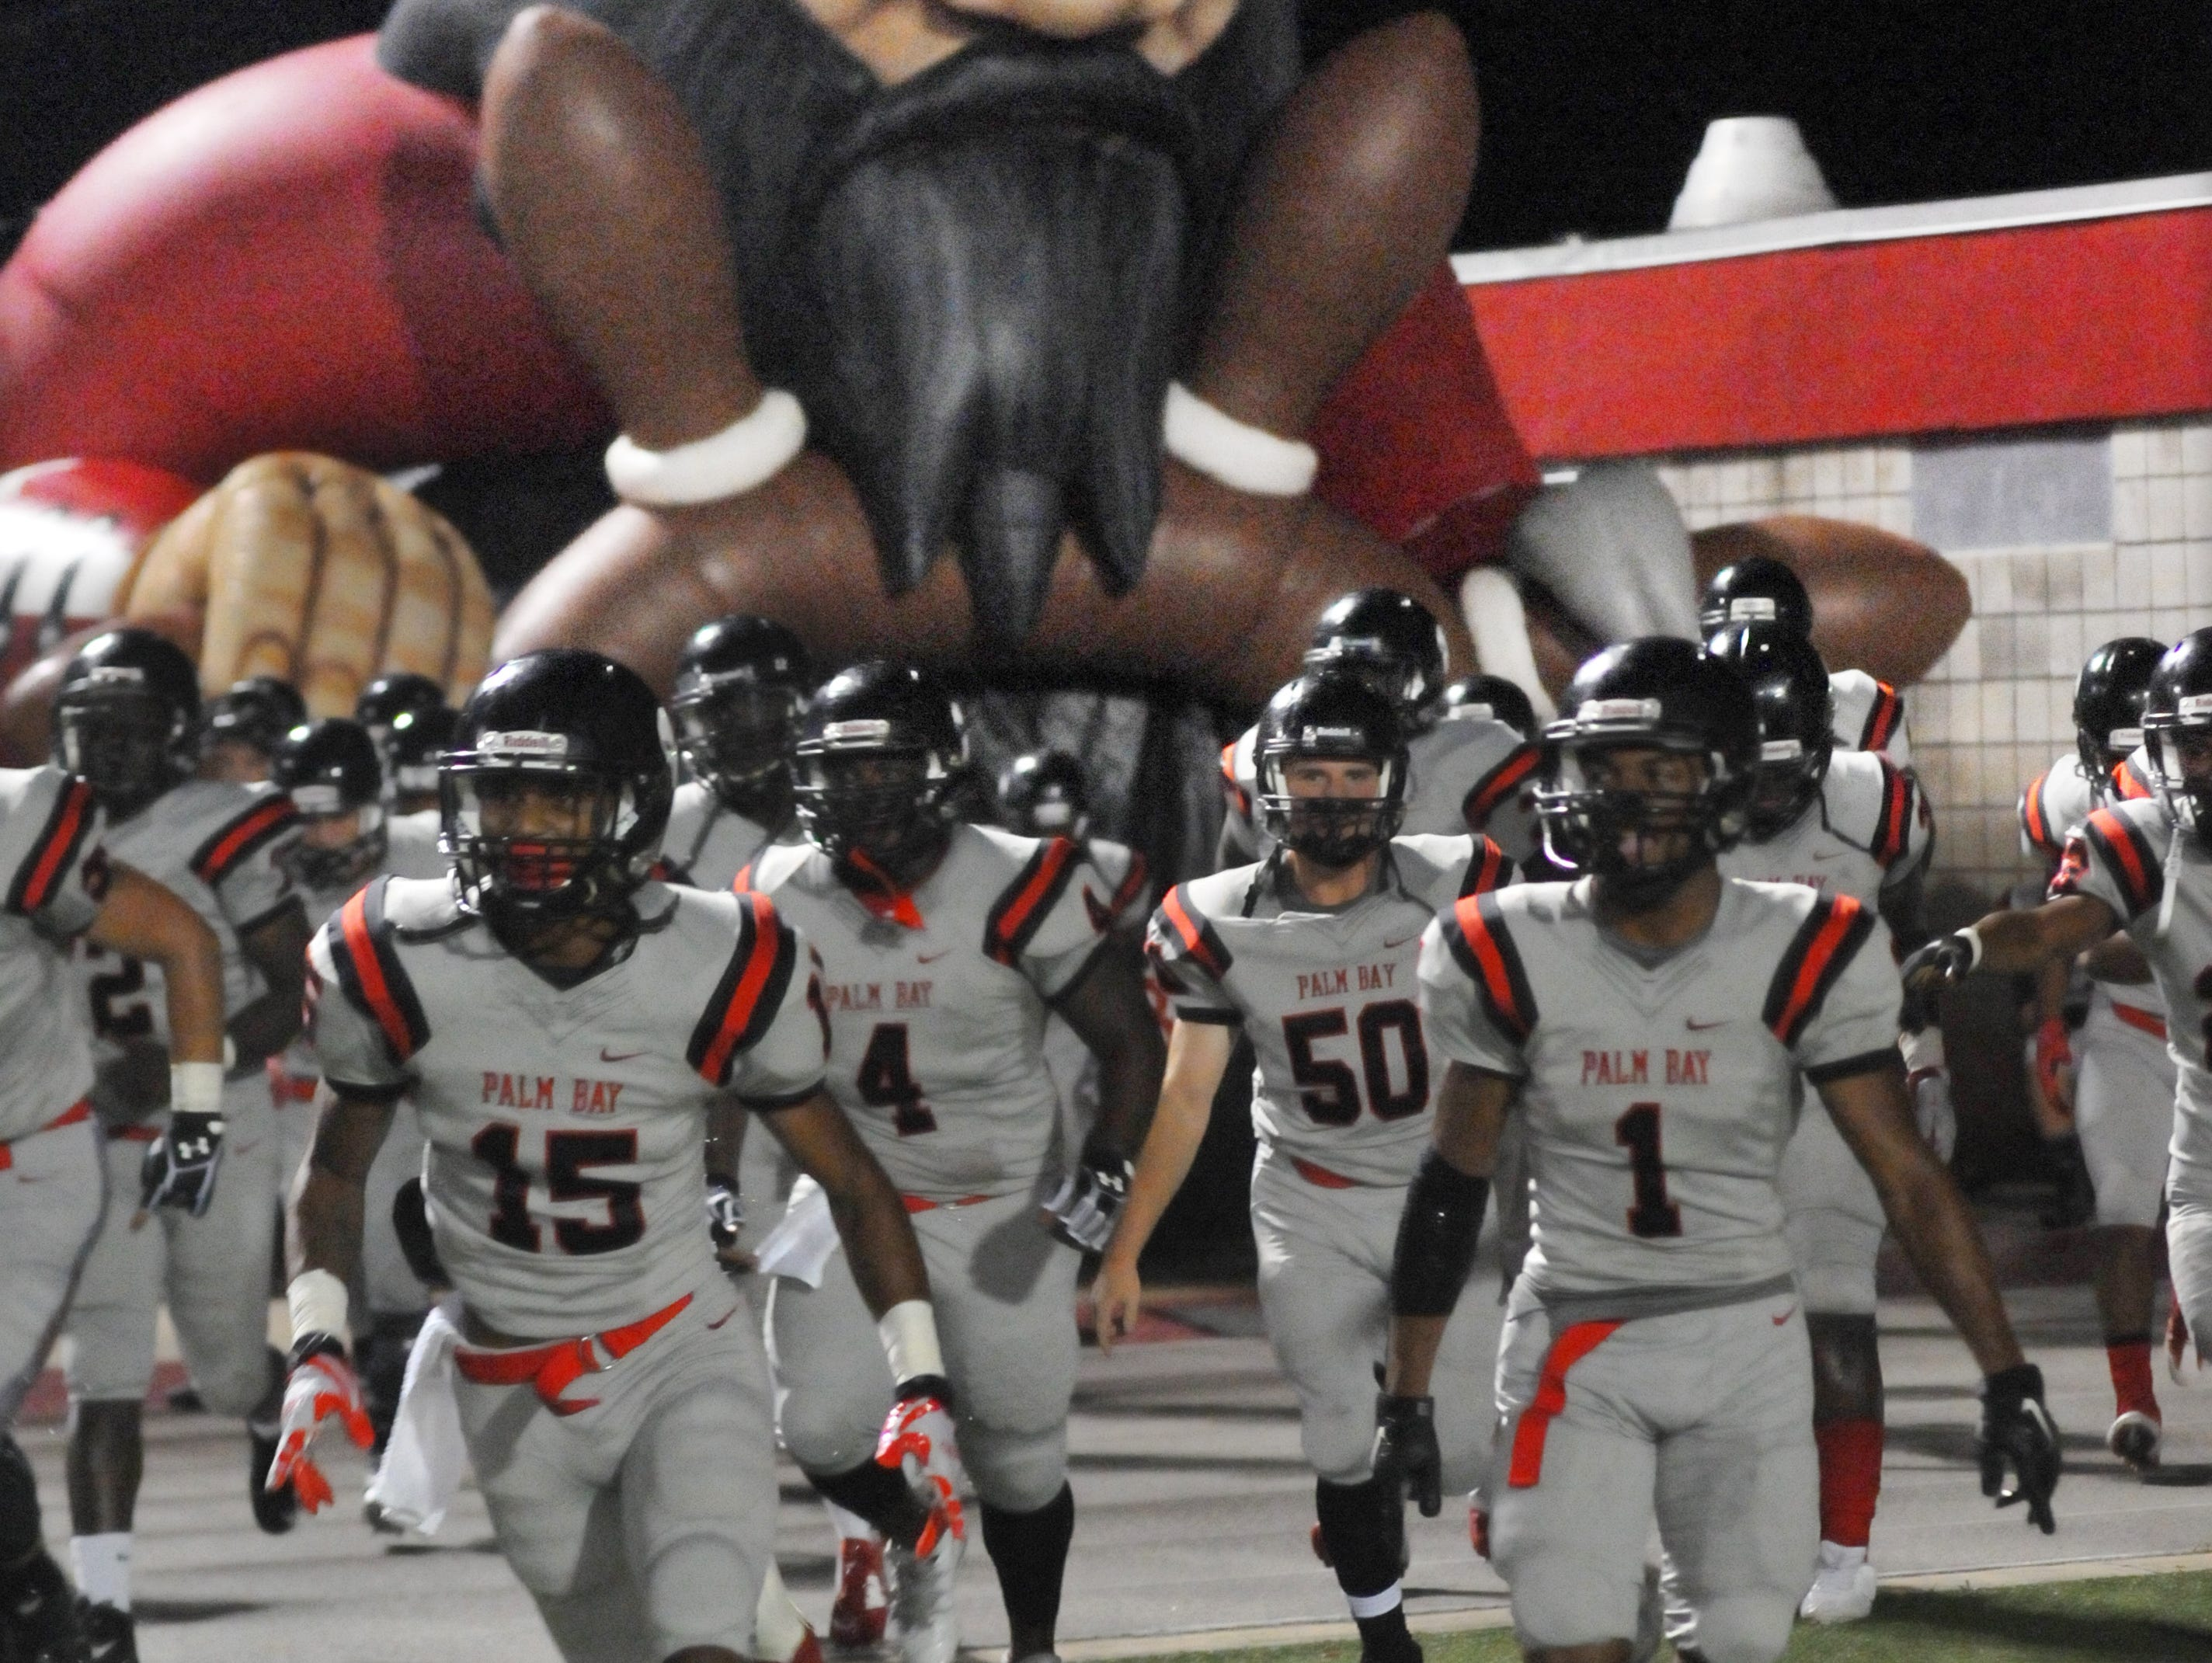 Palm Bay High's players take the field for Friday nights lightning delayed game with Titusville held at Palm Bay High football field .